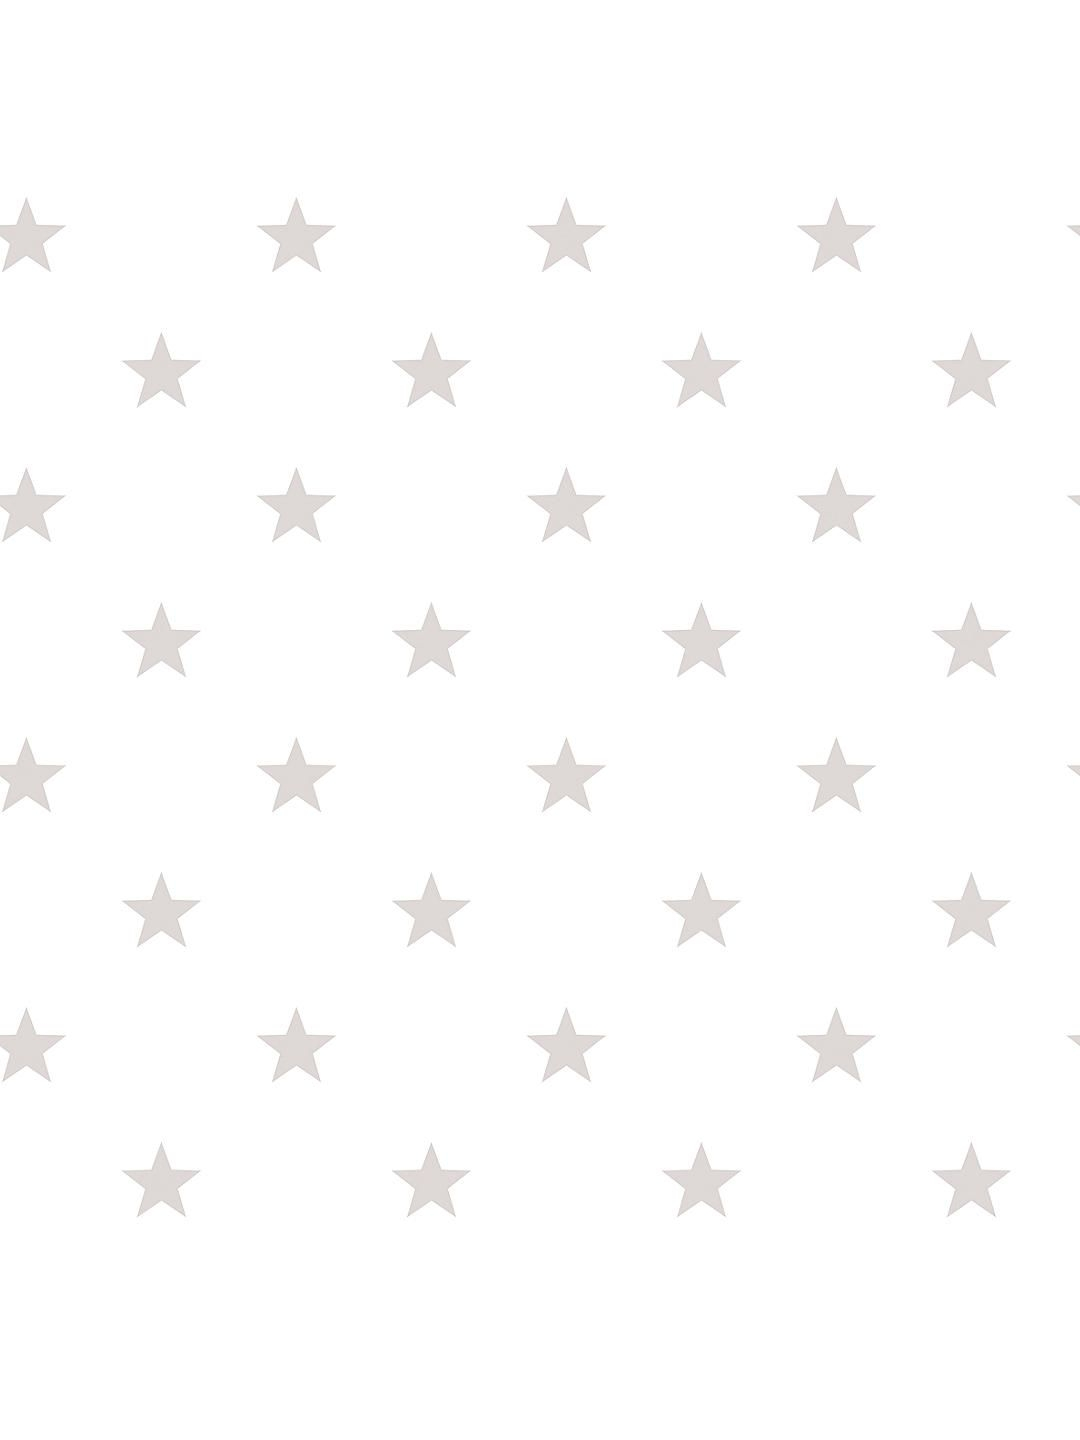 Galerie Sharp Stars Wallpaper G23103 With images  Star